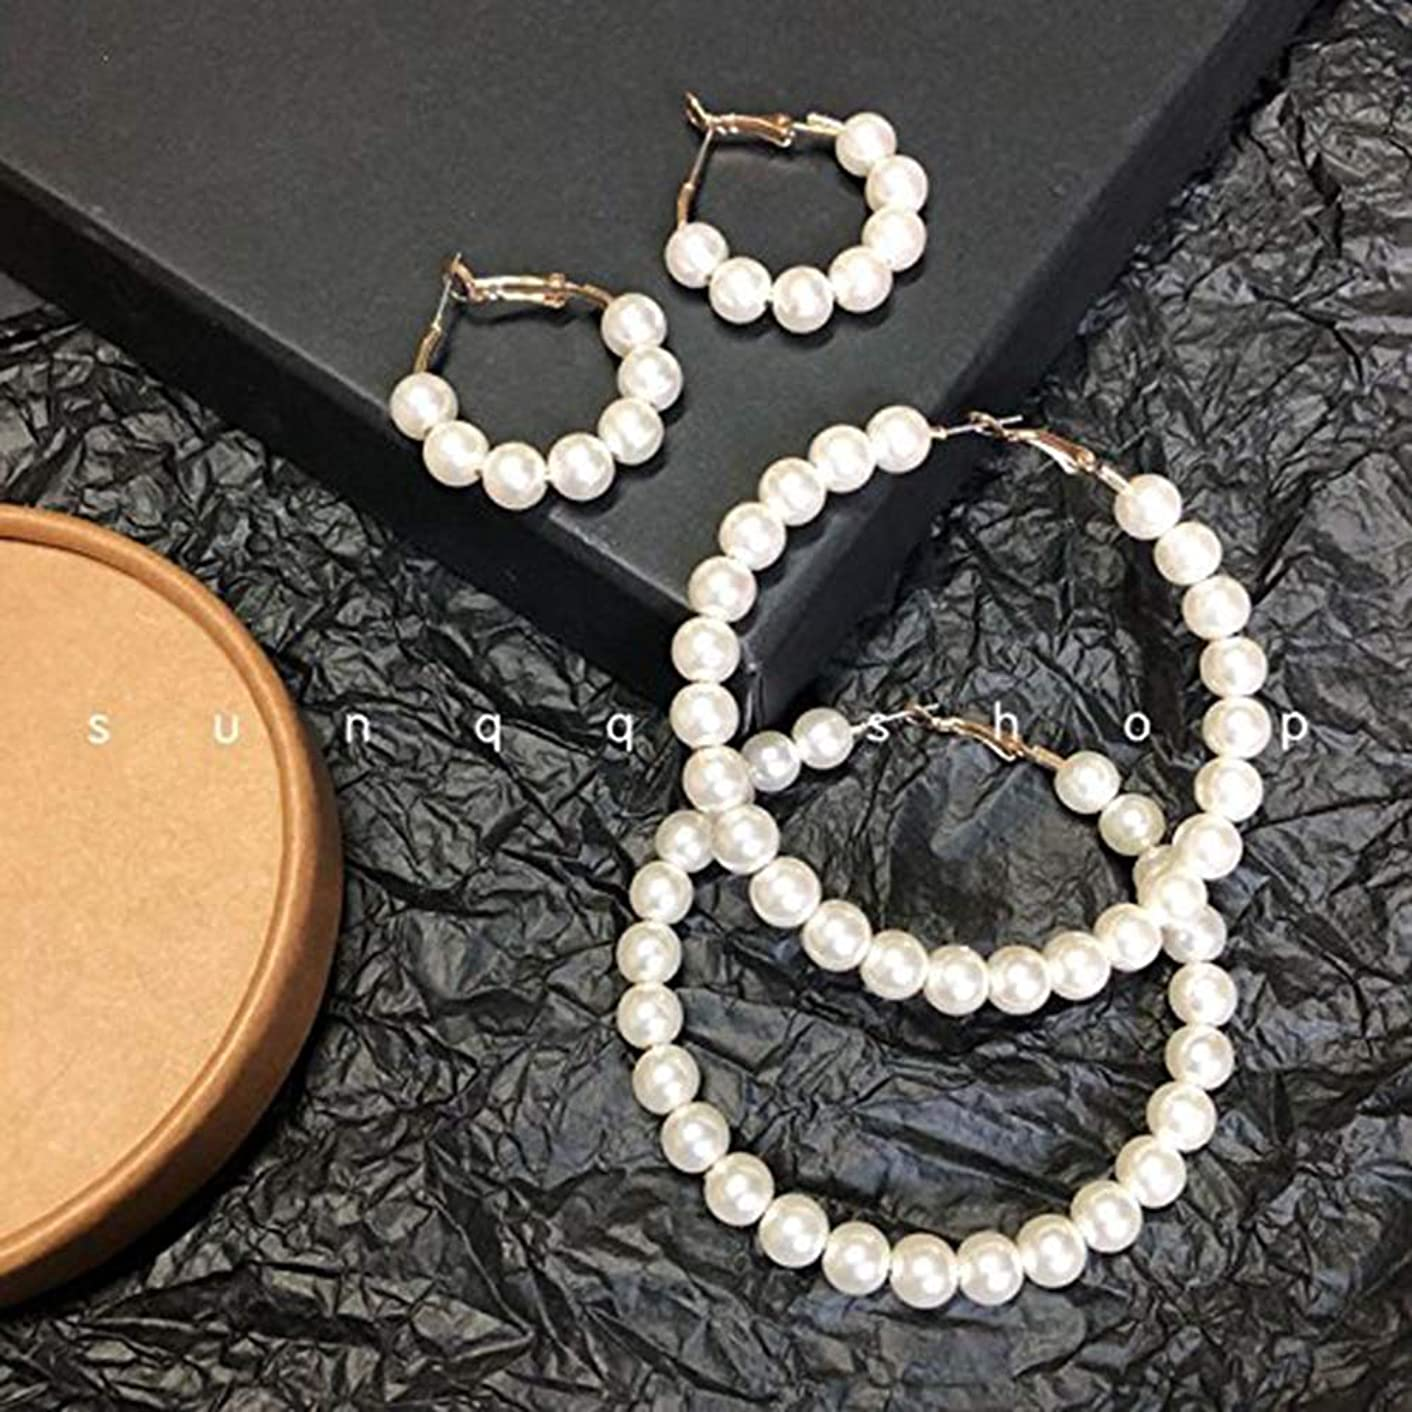 S custom home trade of the original single retro texture pearl exaggerated big ear hoop earrings